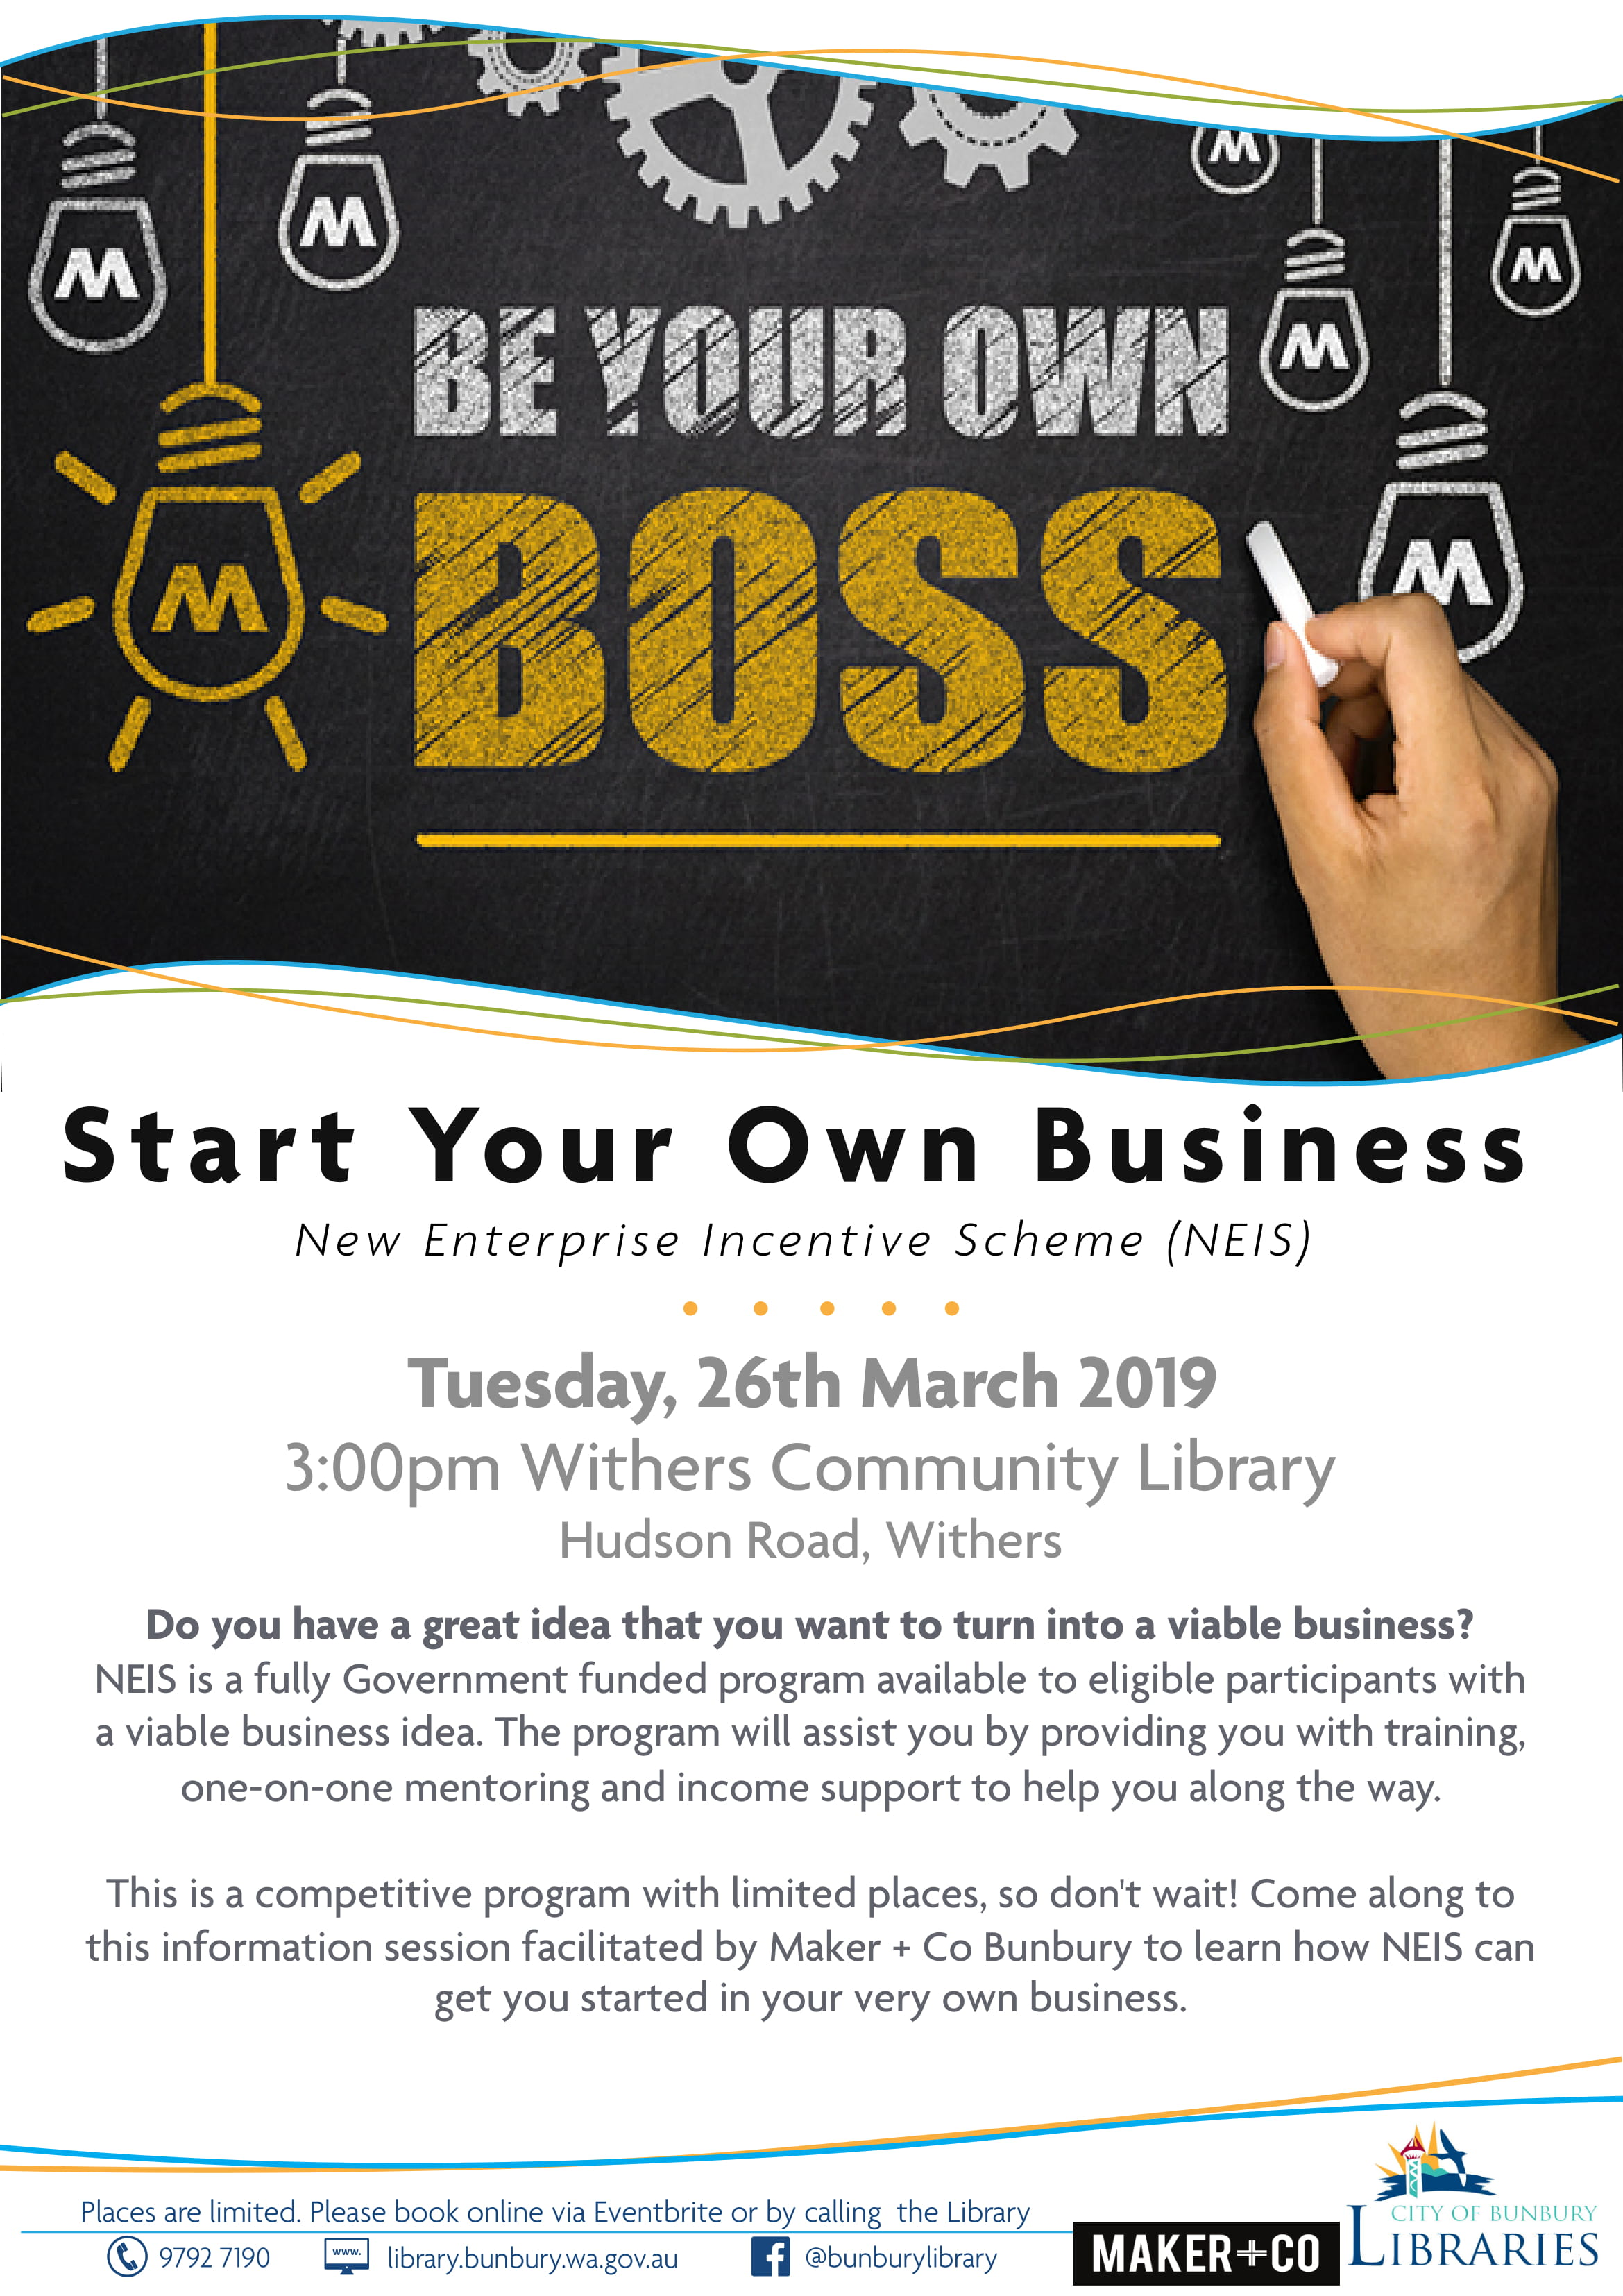 Start Your Own Business Poster Template-1.jpg